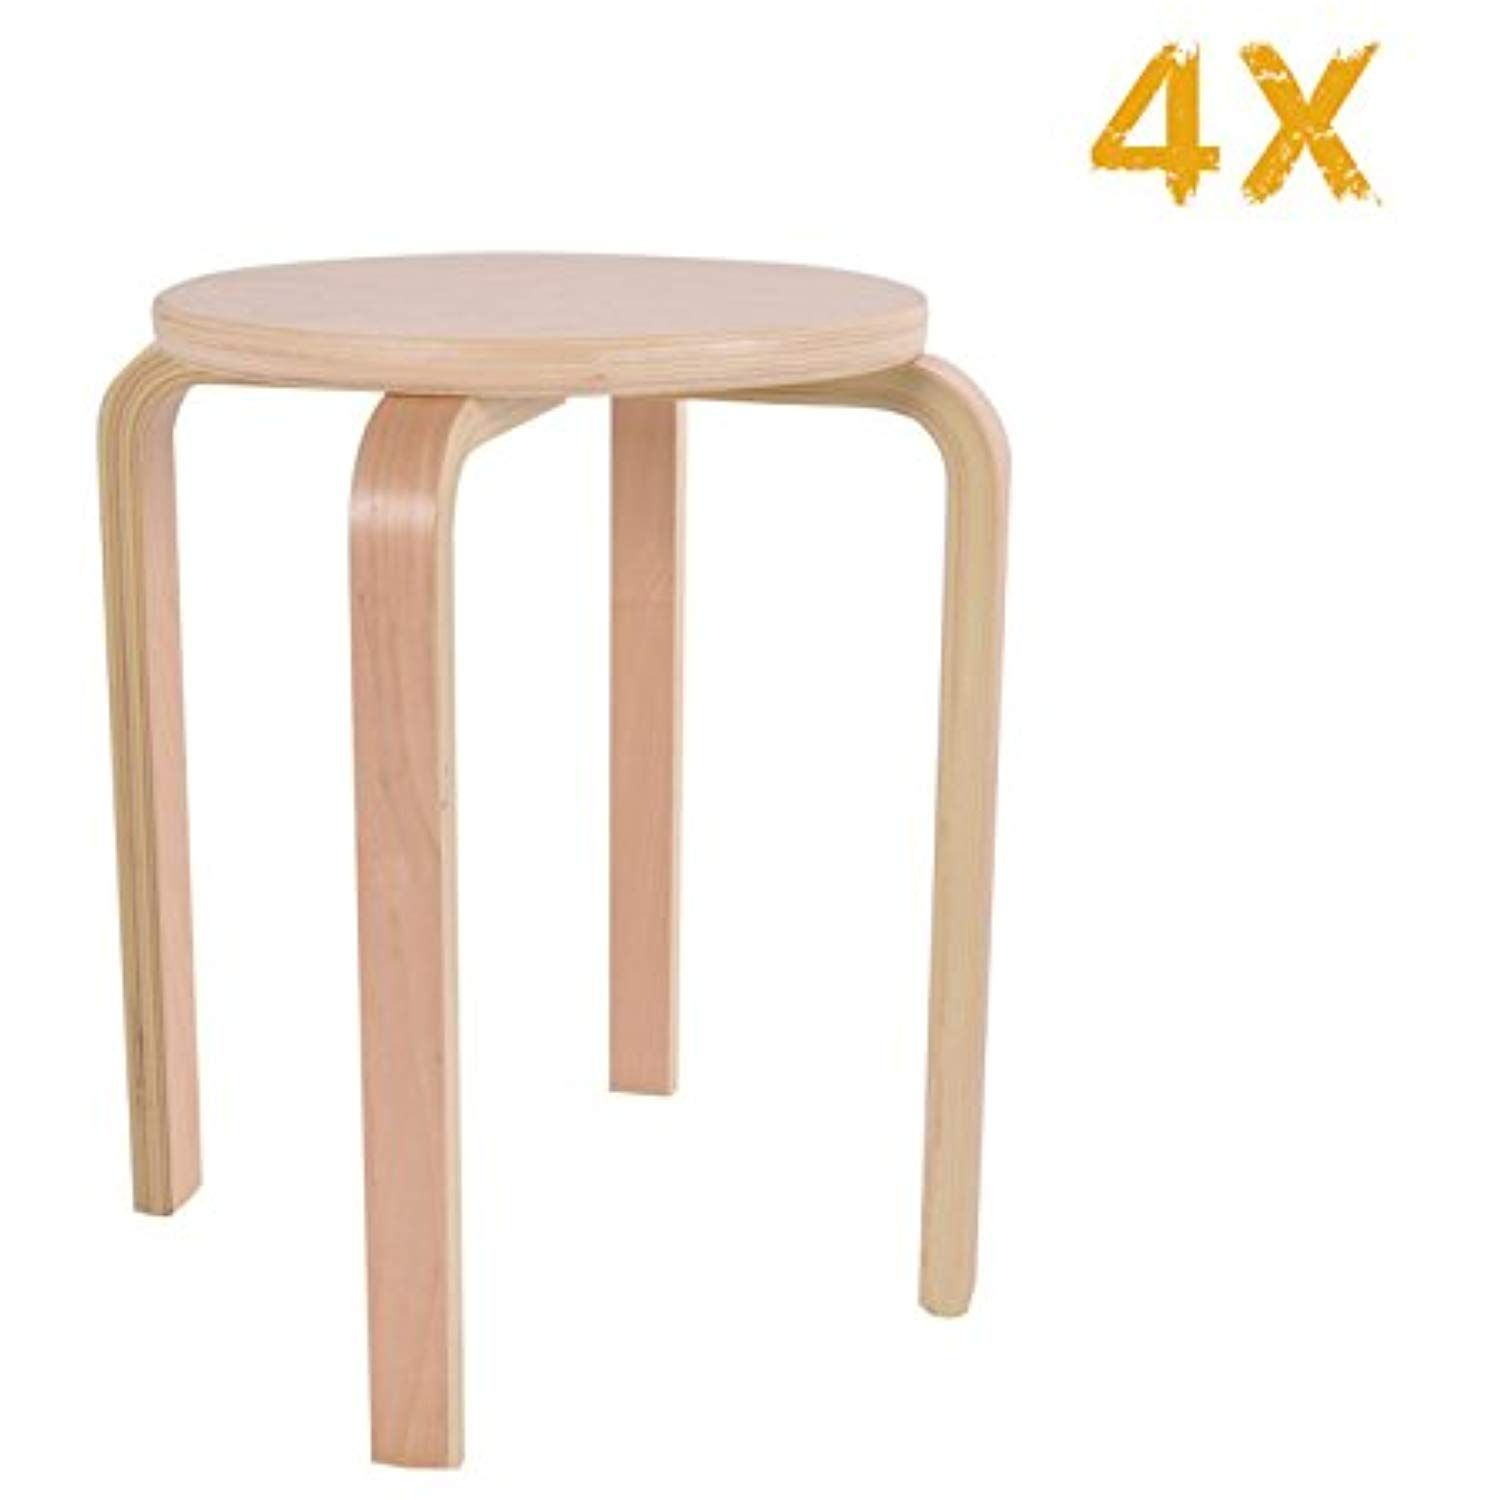 Costroyce Set Of 4 Classroom 17 Natural Wood Seating Chairs